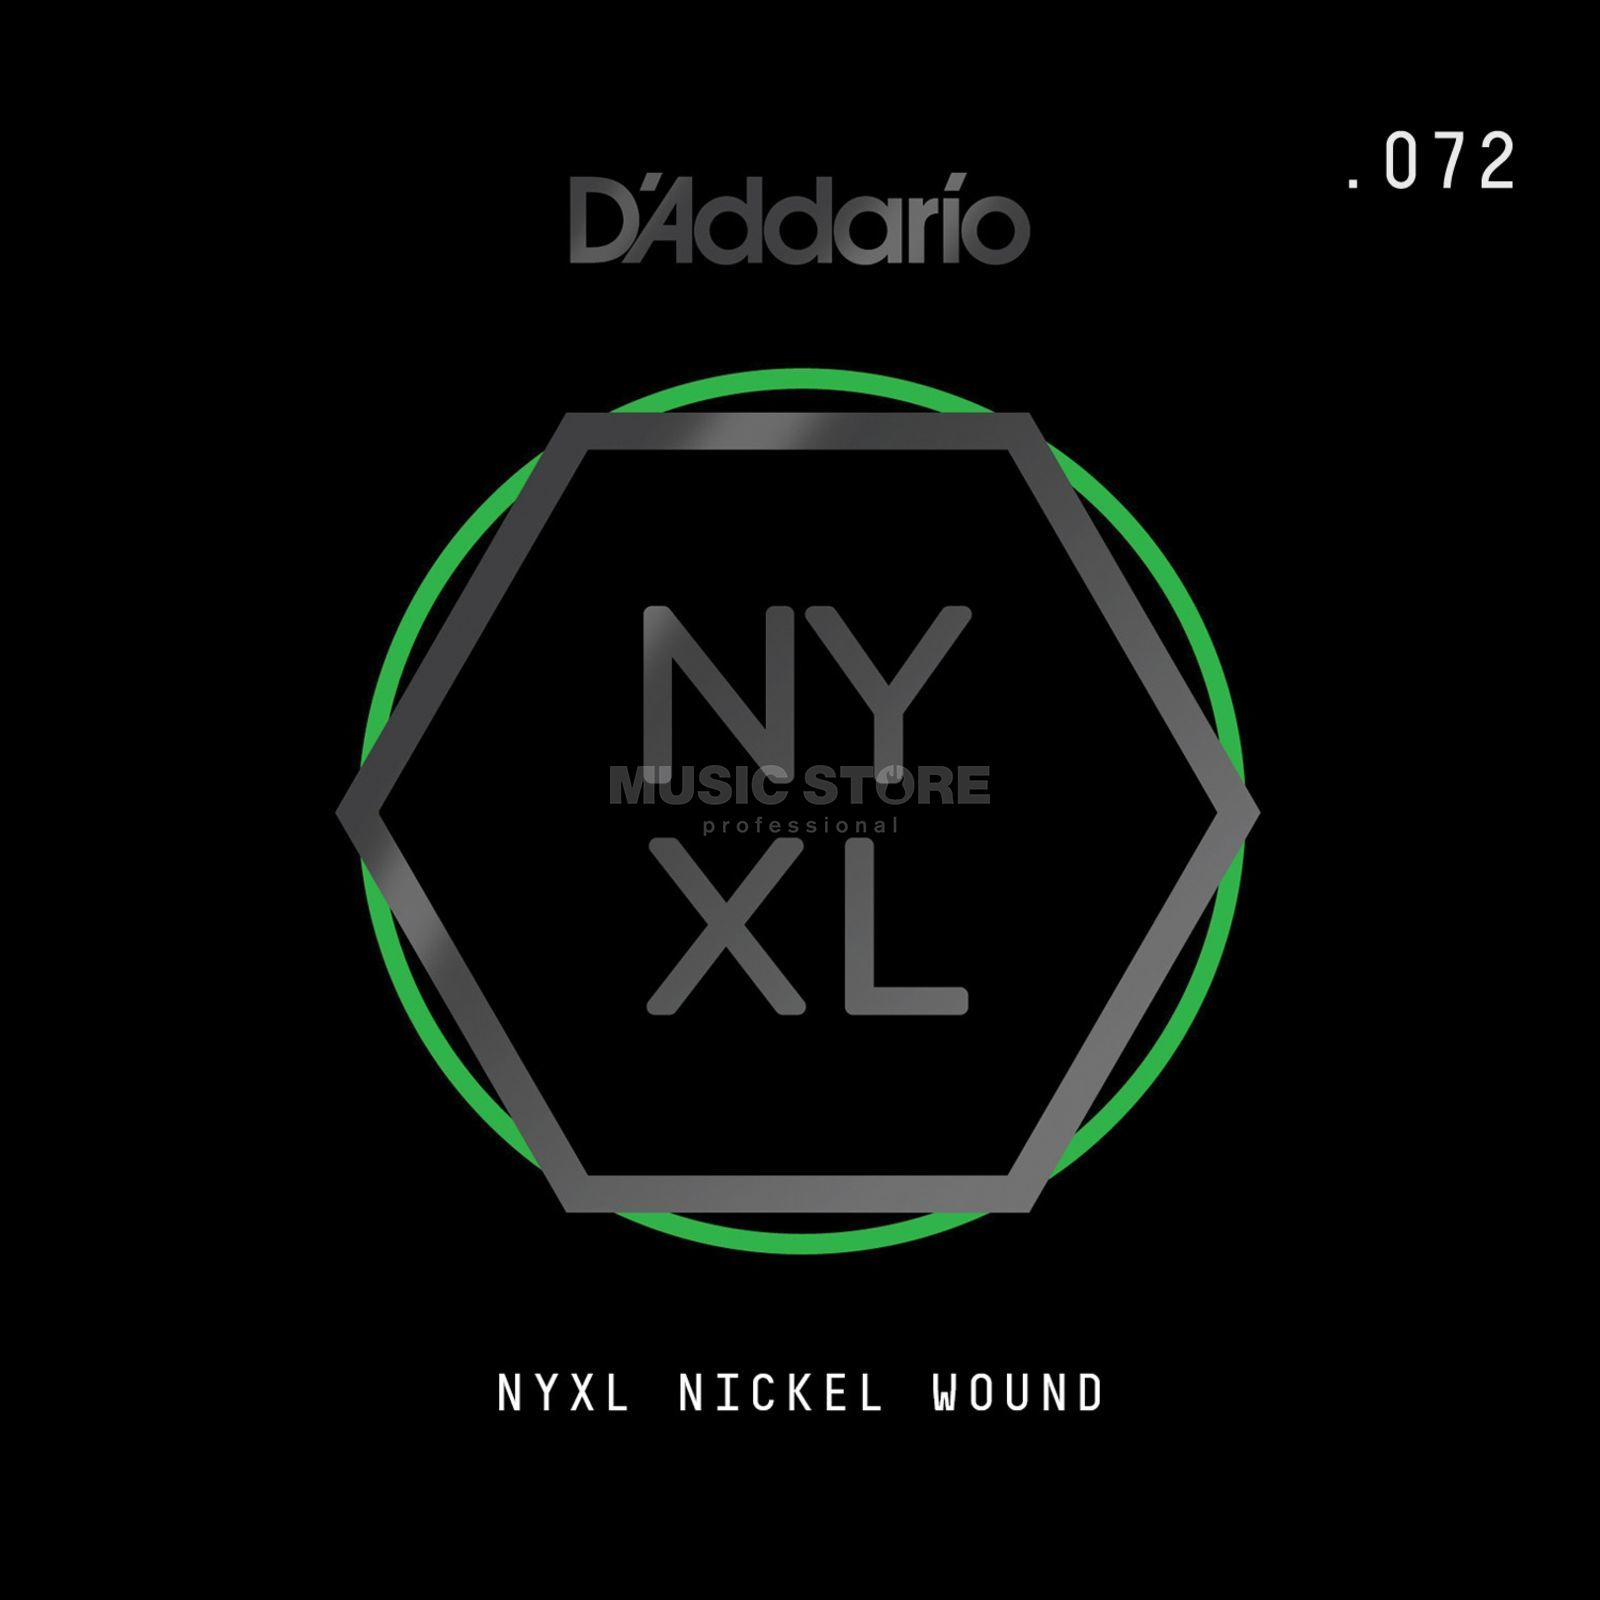 D'Addario NYNW072 Single String Nickel Wound Immagine prodotto